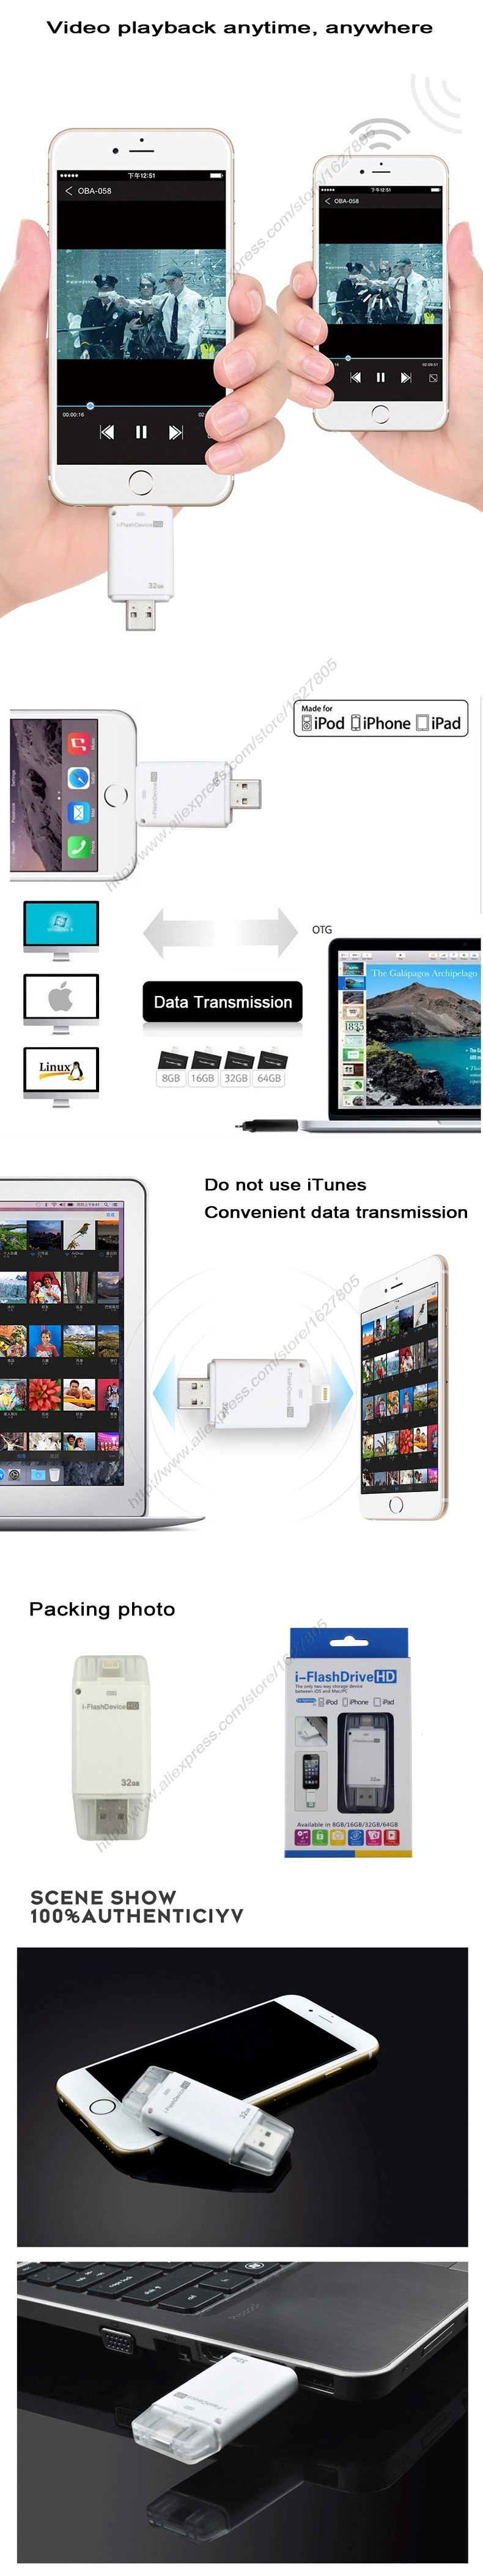 i-Flashdrive Smartphone Otg USb Pen Drive Lightning/Usb Flash Drive For iphone 5/6/6plus ipad Built-in Memory Card Usb Stick